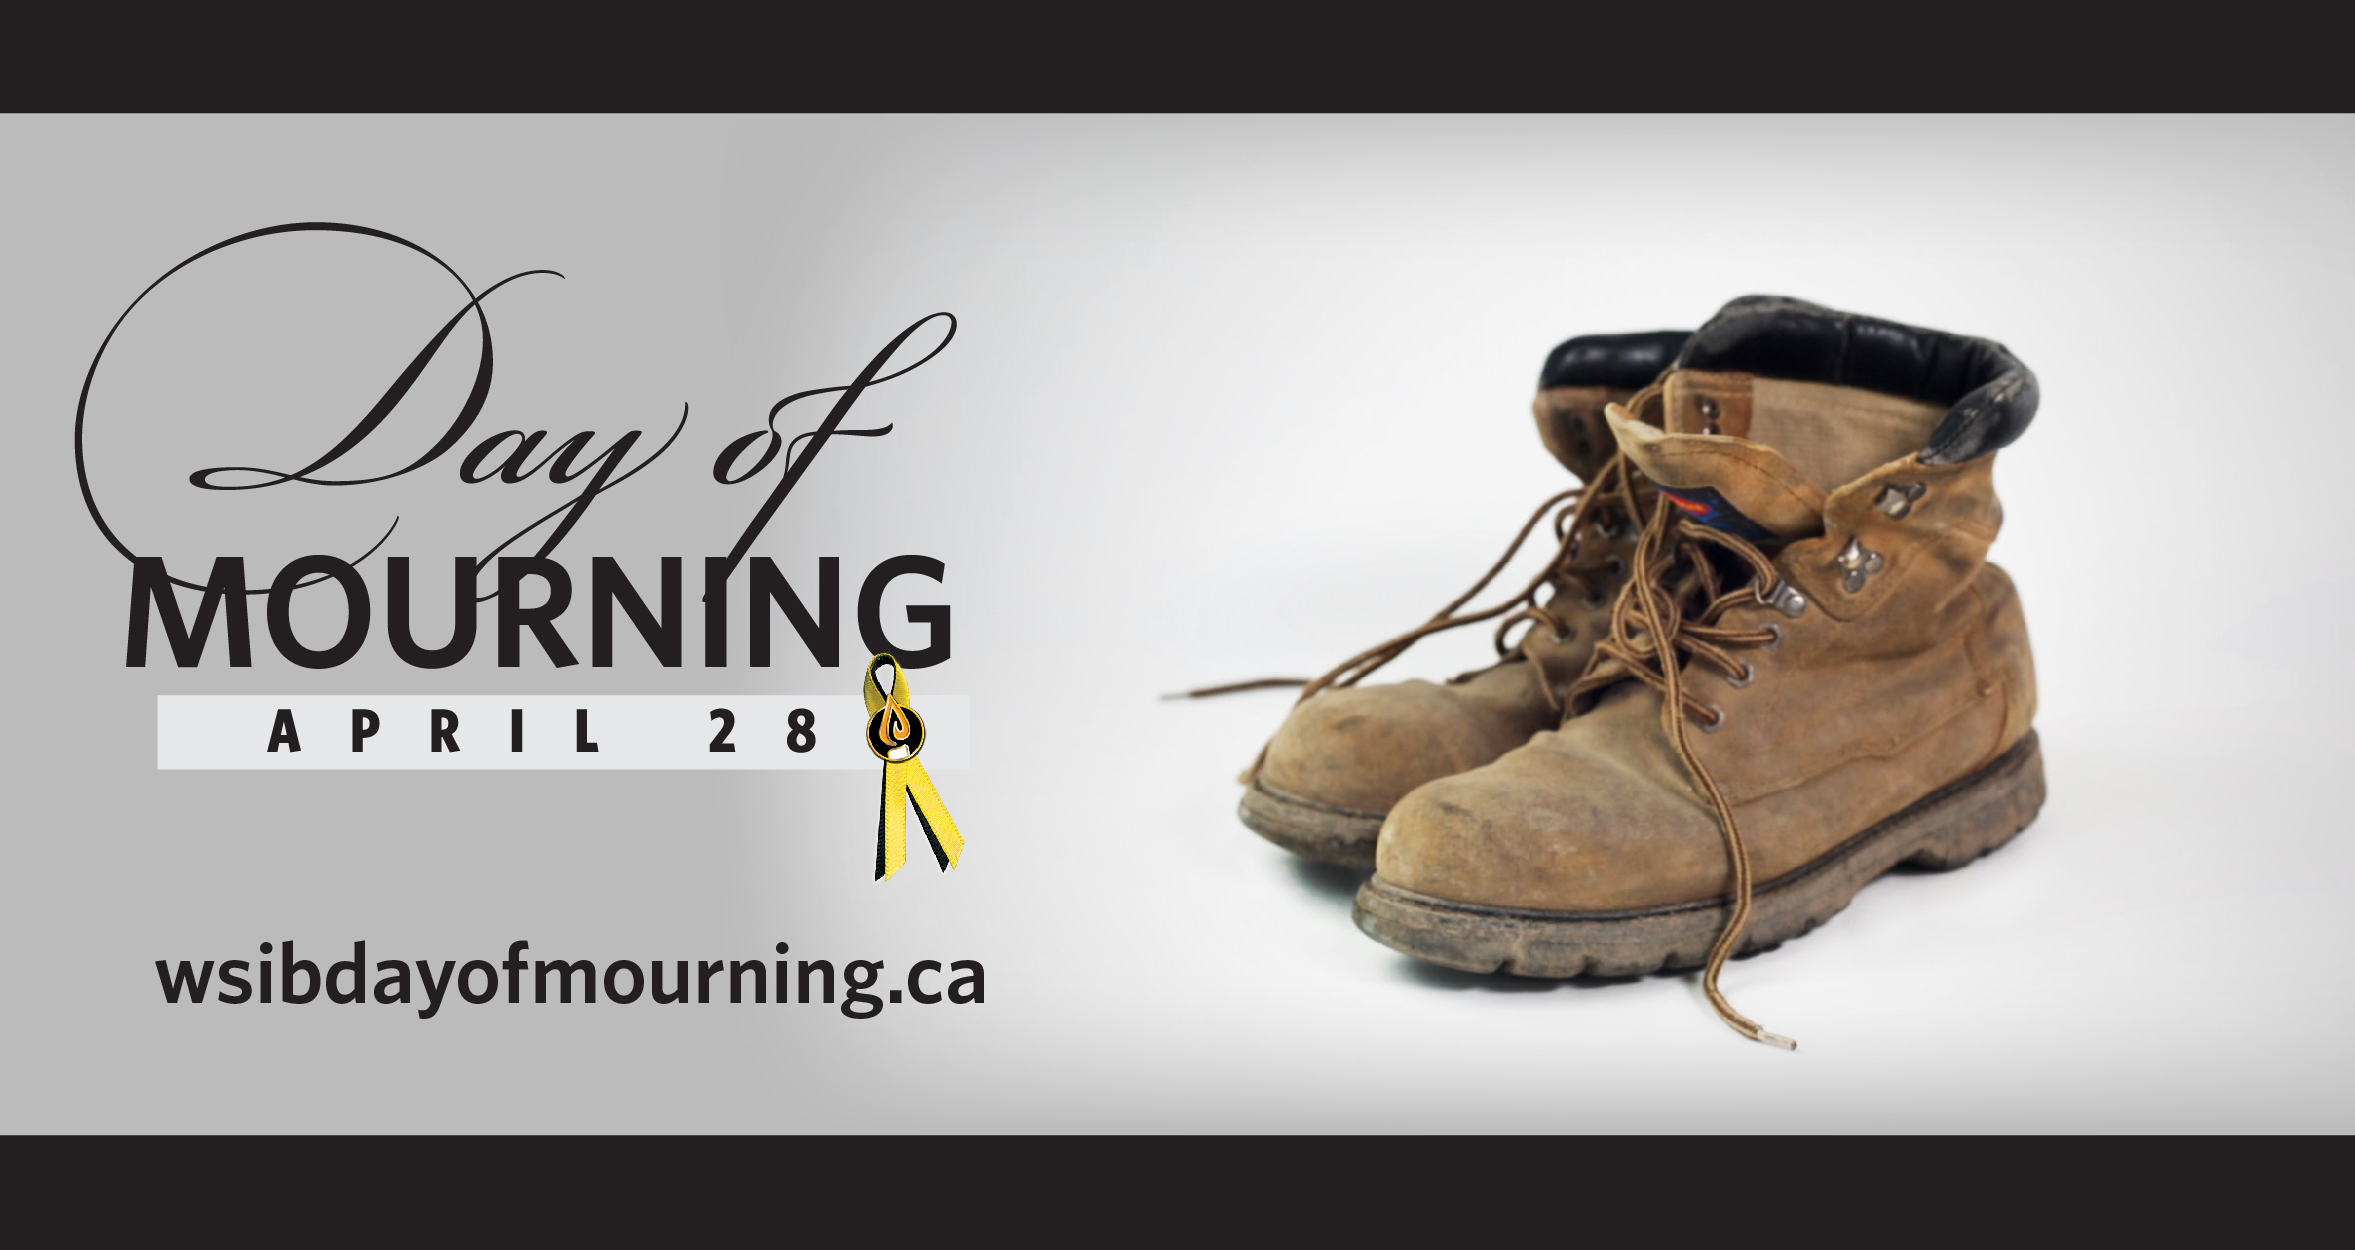 ECAO_day of mourning_12042017.jpg